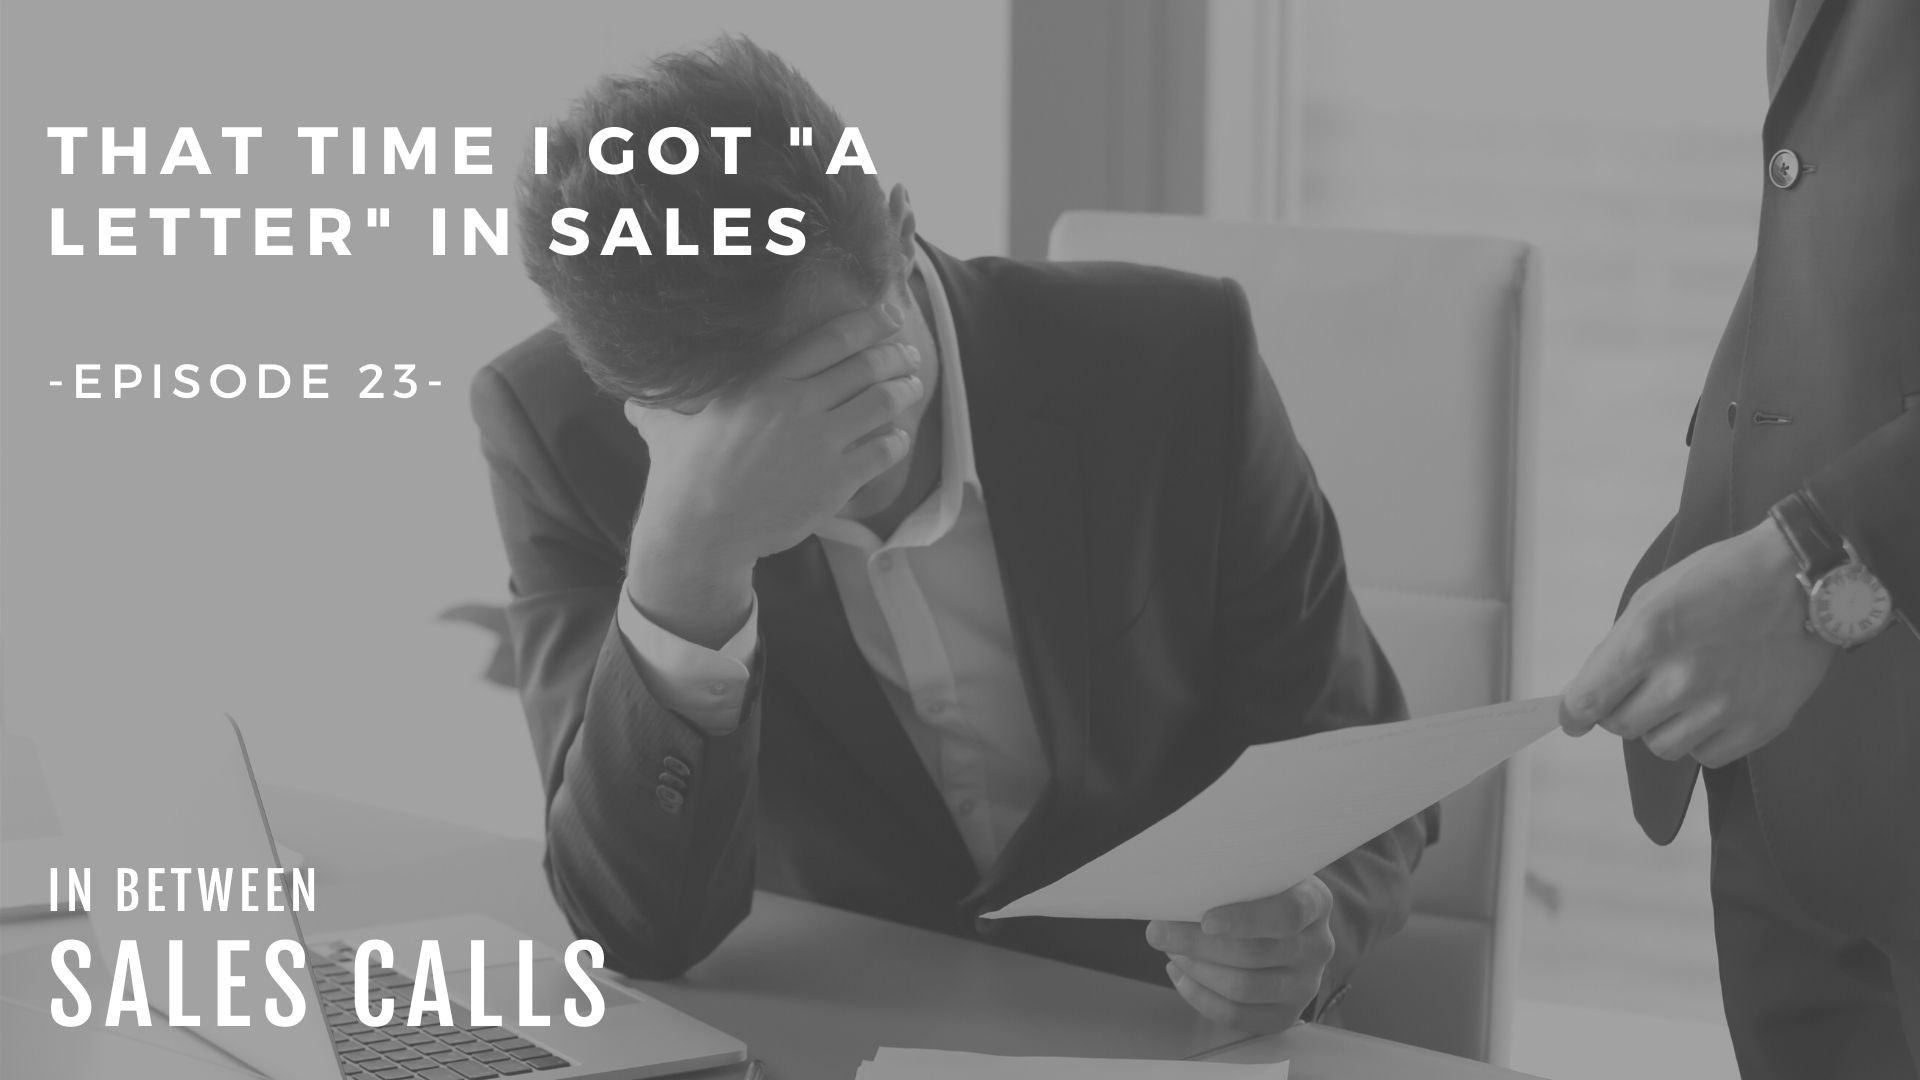 that-time-i-got-a-poor-performance-letter-modern-sales-training-in-between-sales-calls-podcast